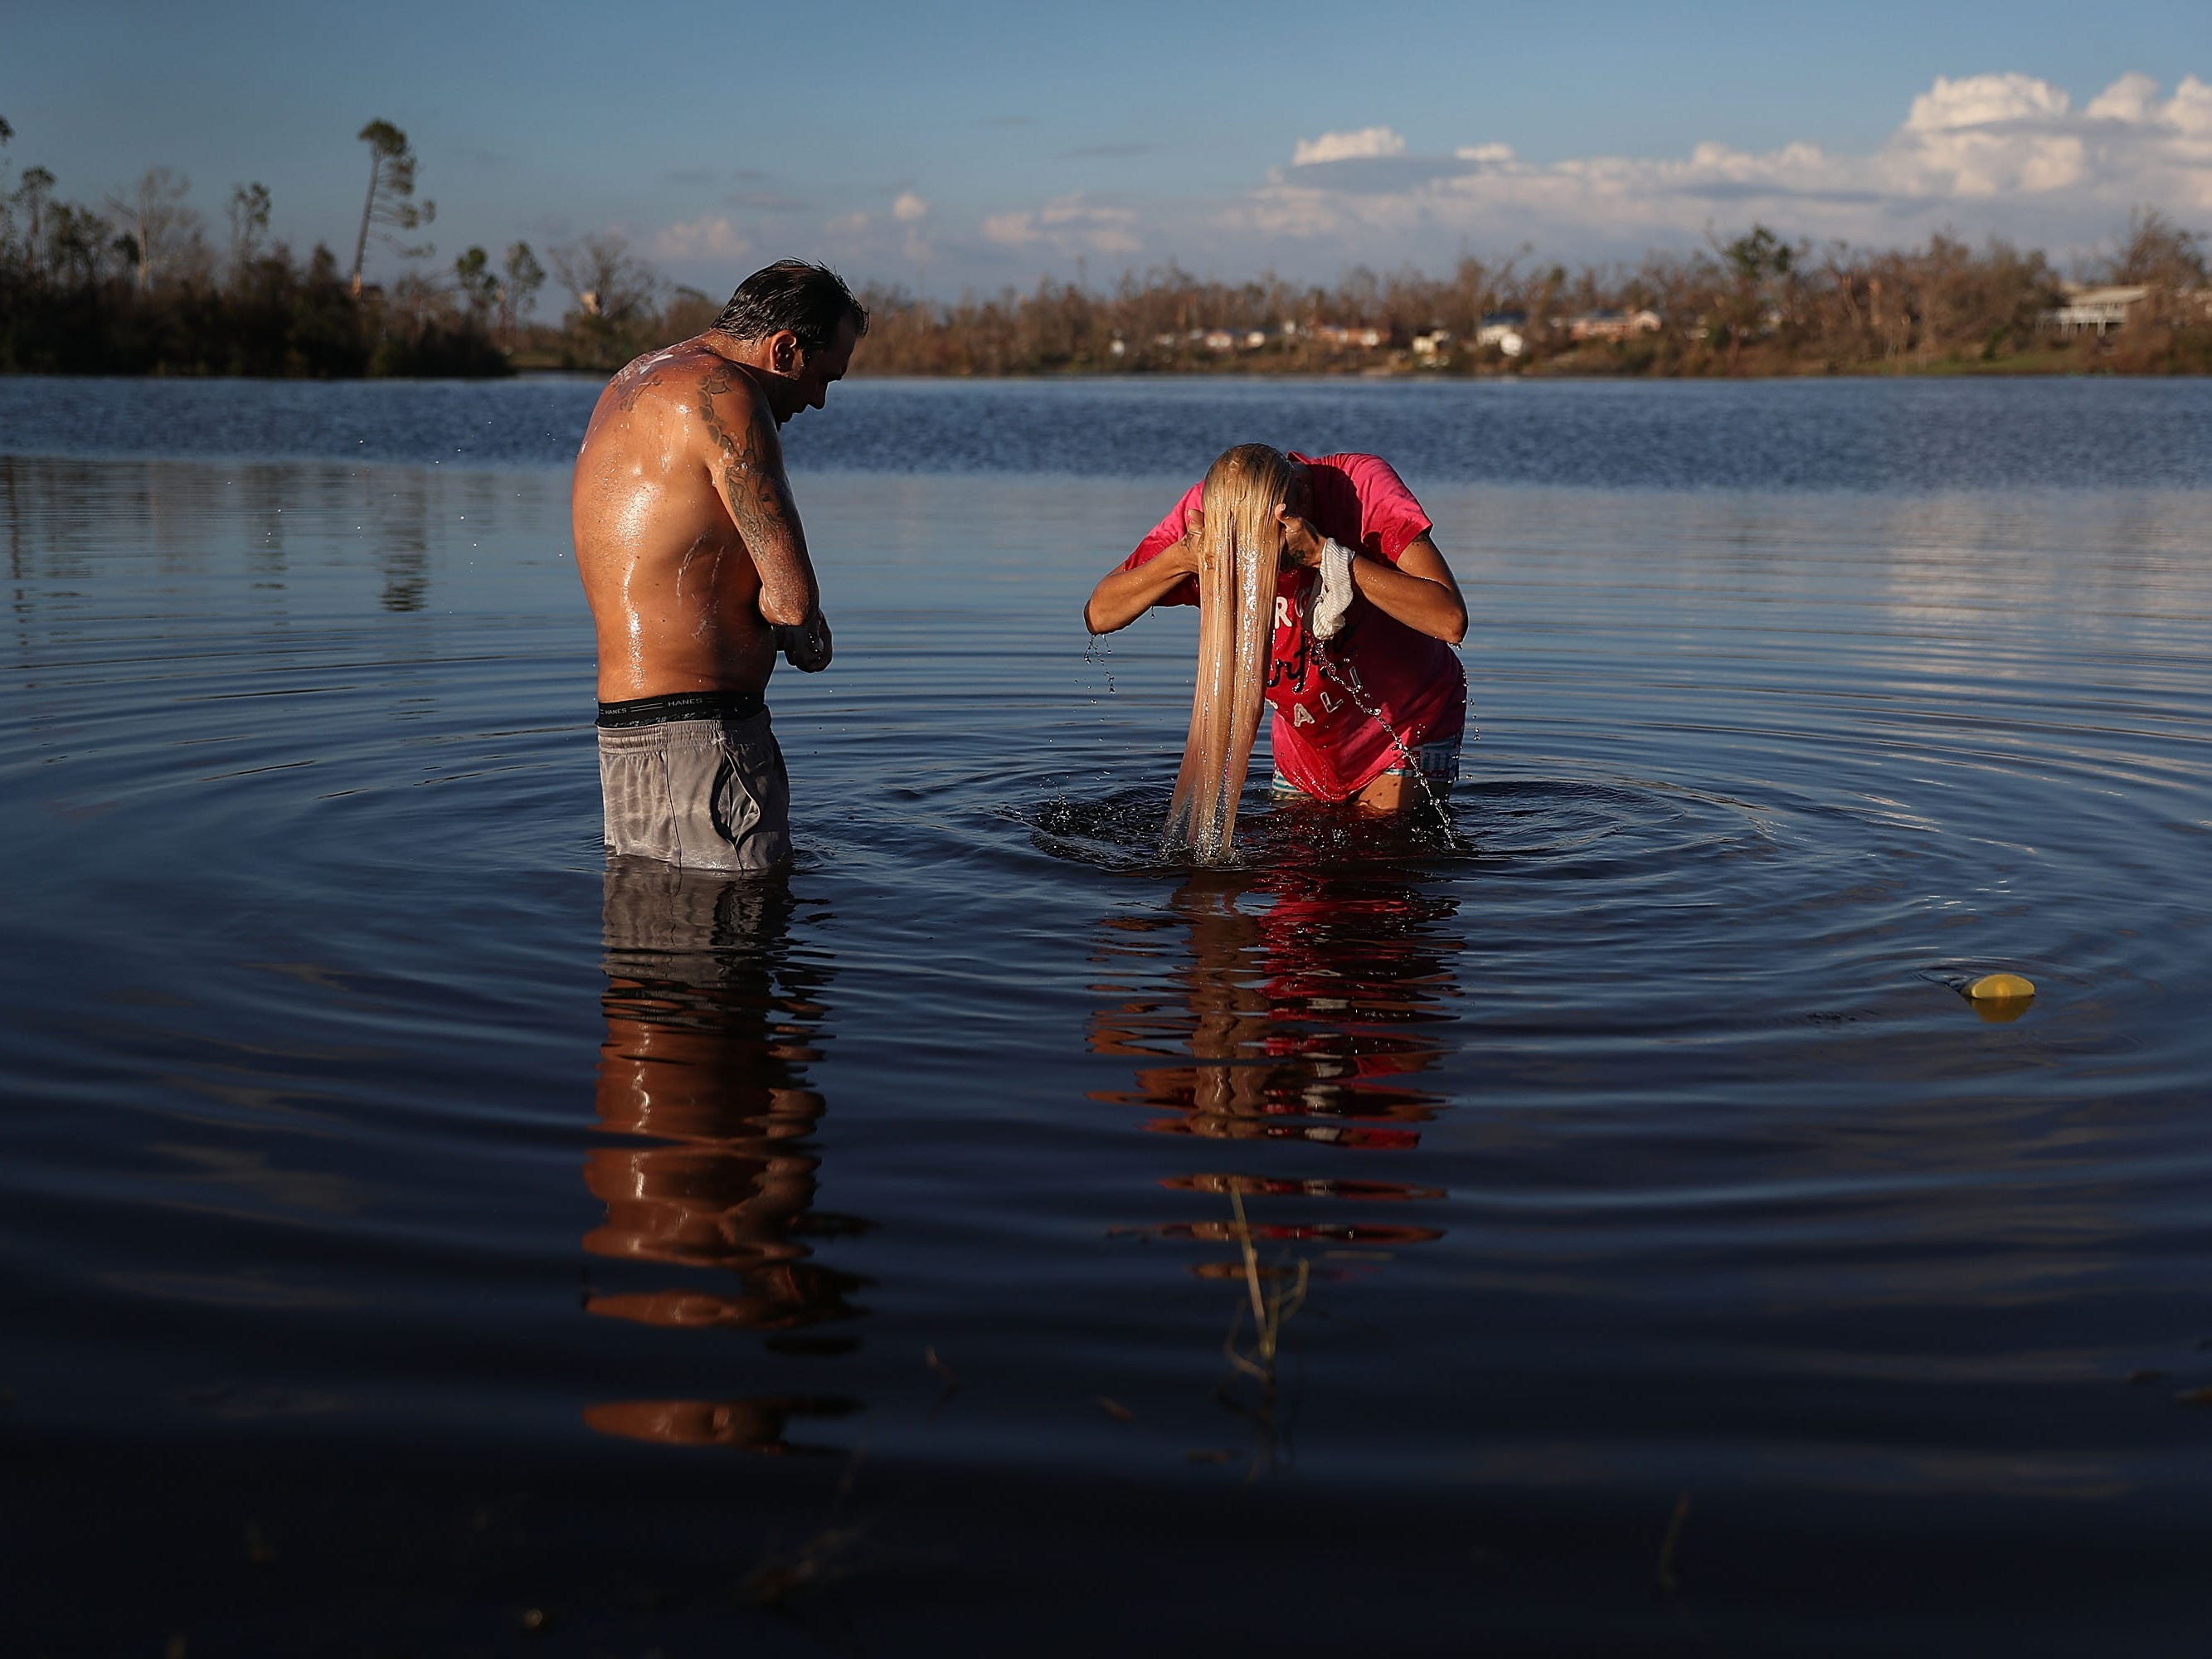 Justin Norman and Lisa Salle wash themselves in Lake Martin because their home has no running water after much of Panama City, Florida's infrastructure was damaged by Hurricane Michael on October 16, 2018. Michael slammed into the Florida Panhandle on October 10 as a Category 4 storm, causing widespread damage and claiming as many as 26 lives.